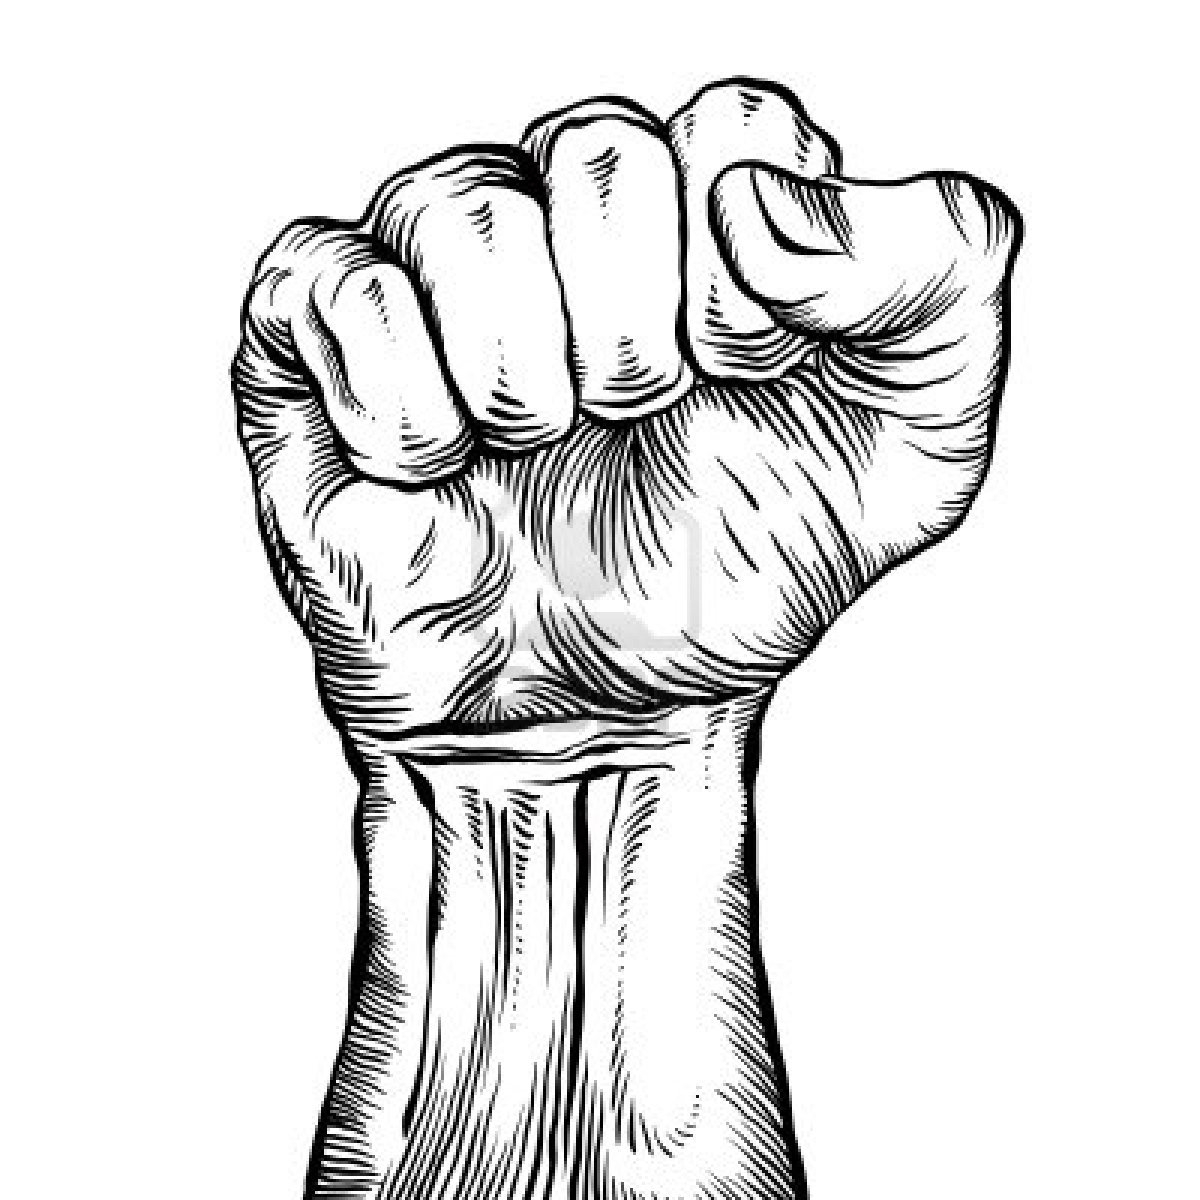 Fist clipart drawing raised Drawing Raised Images: pl cdn03